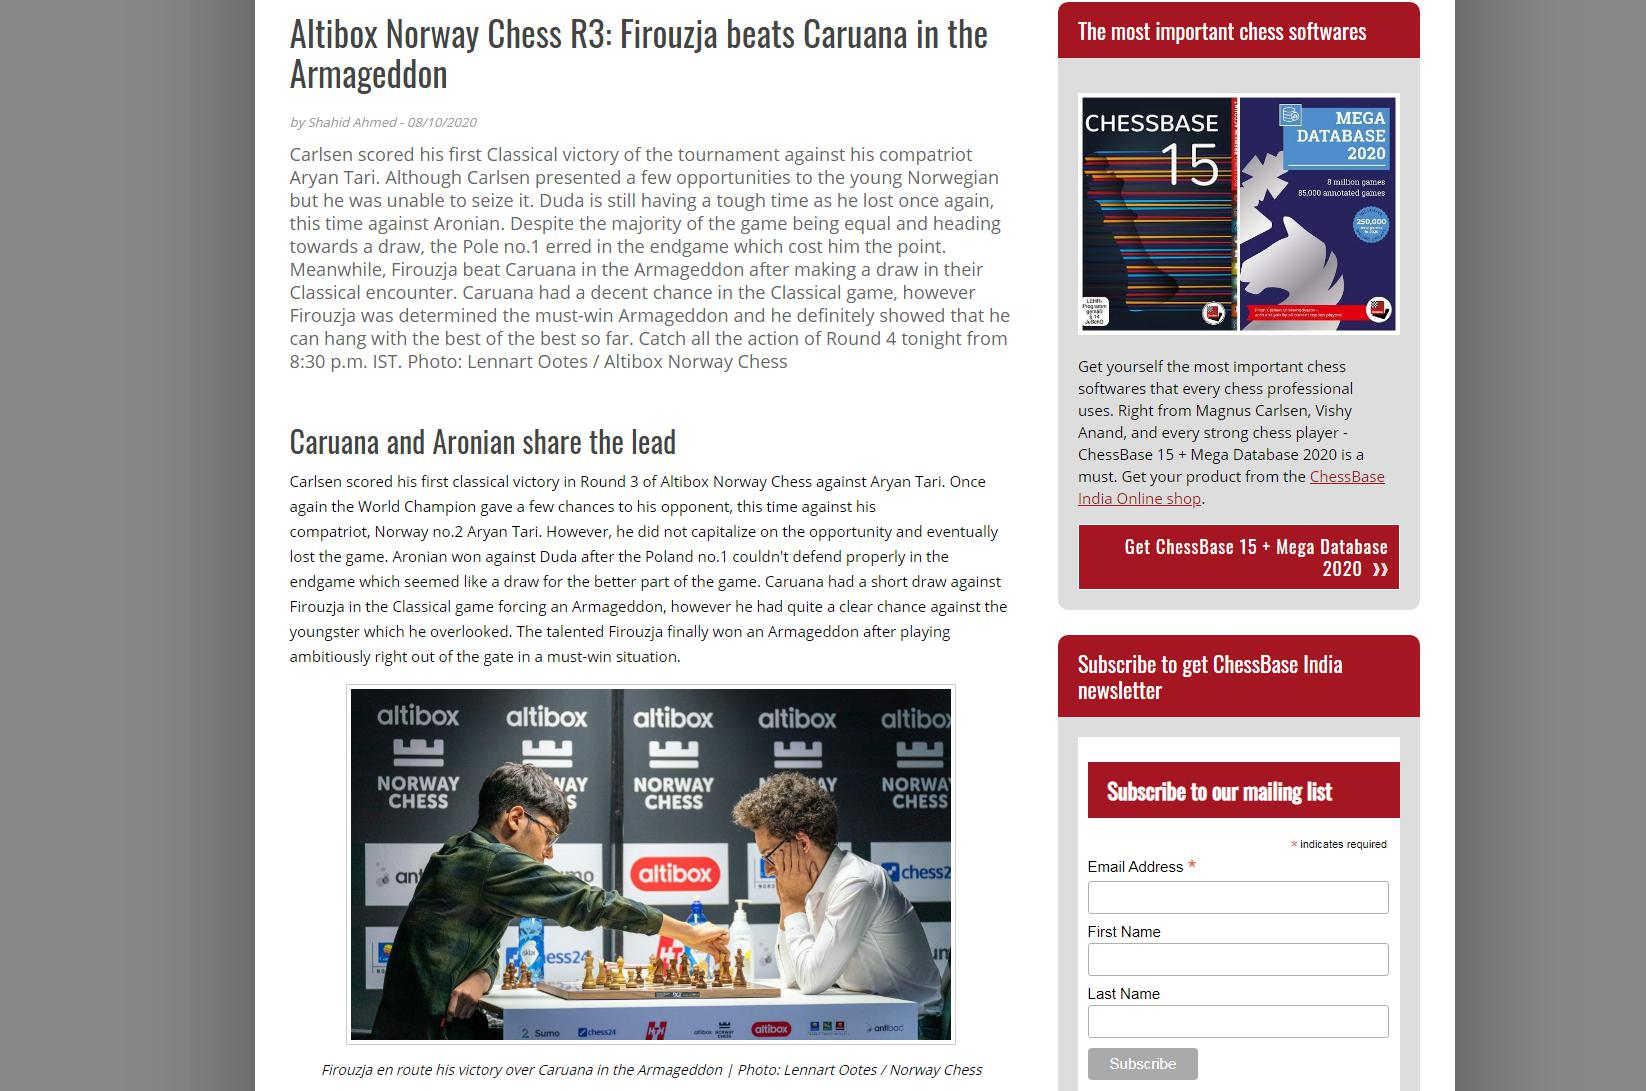 Photo of Altibox Norway Chess R3: Firouzja beats <b>Caruana</b> in the Armageddon